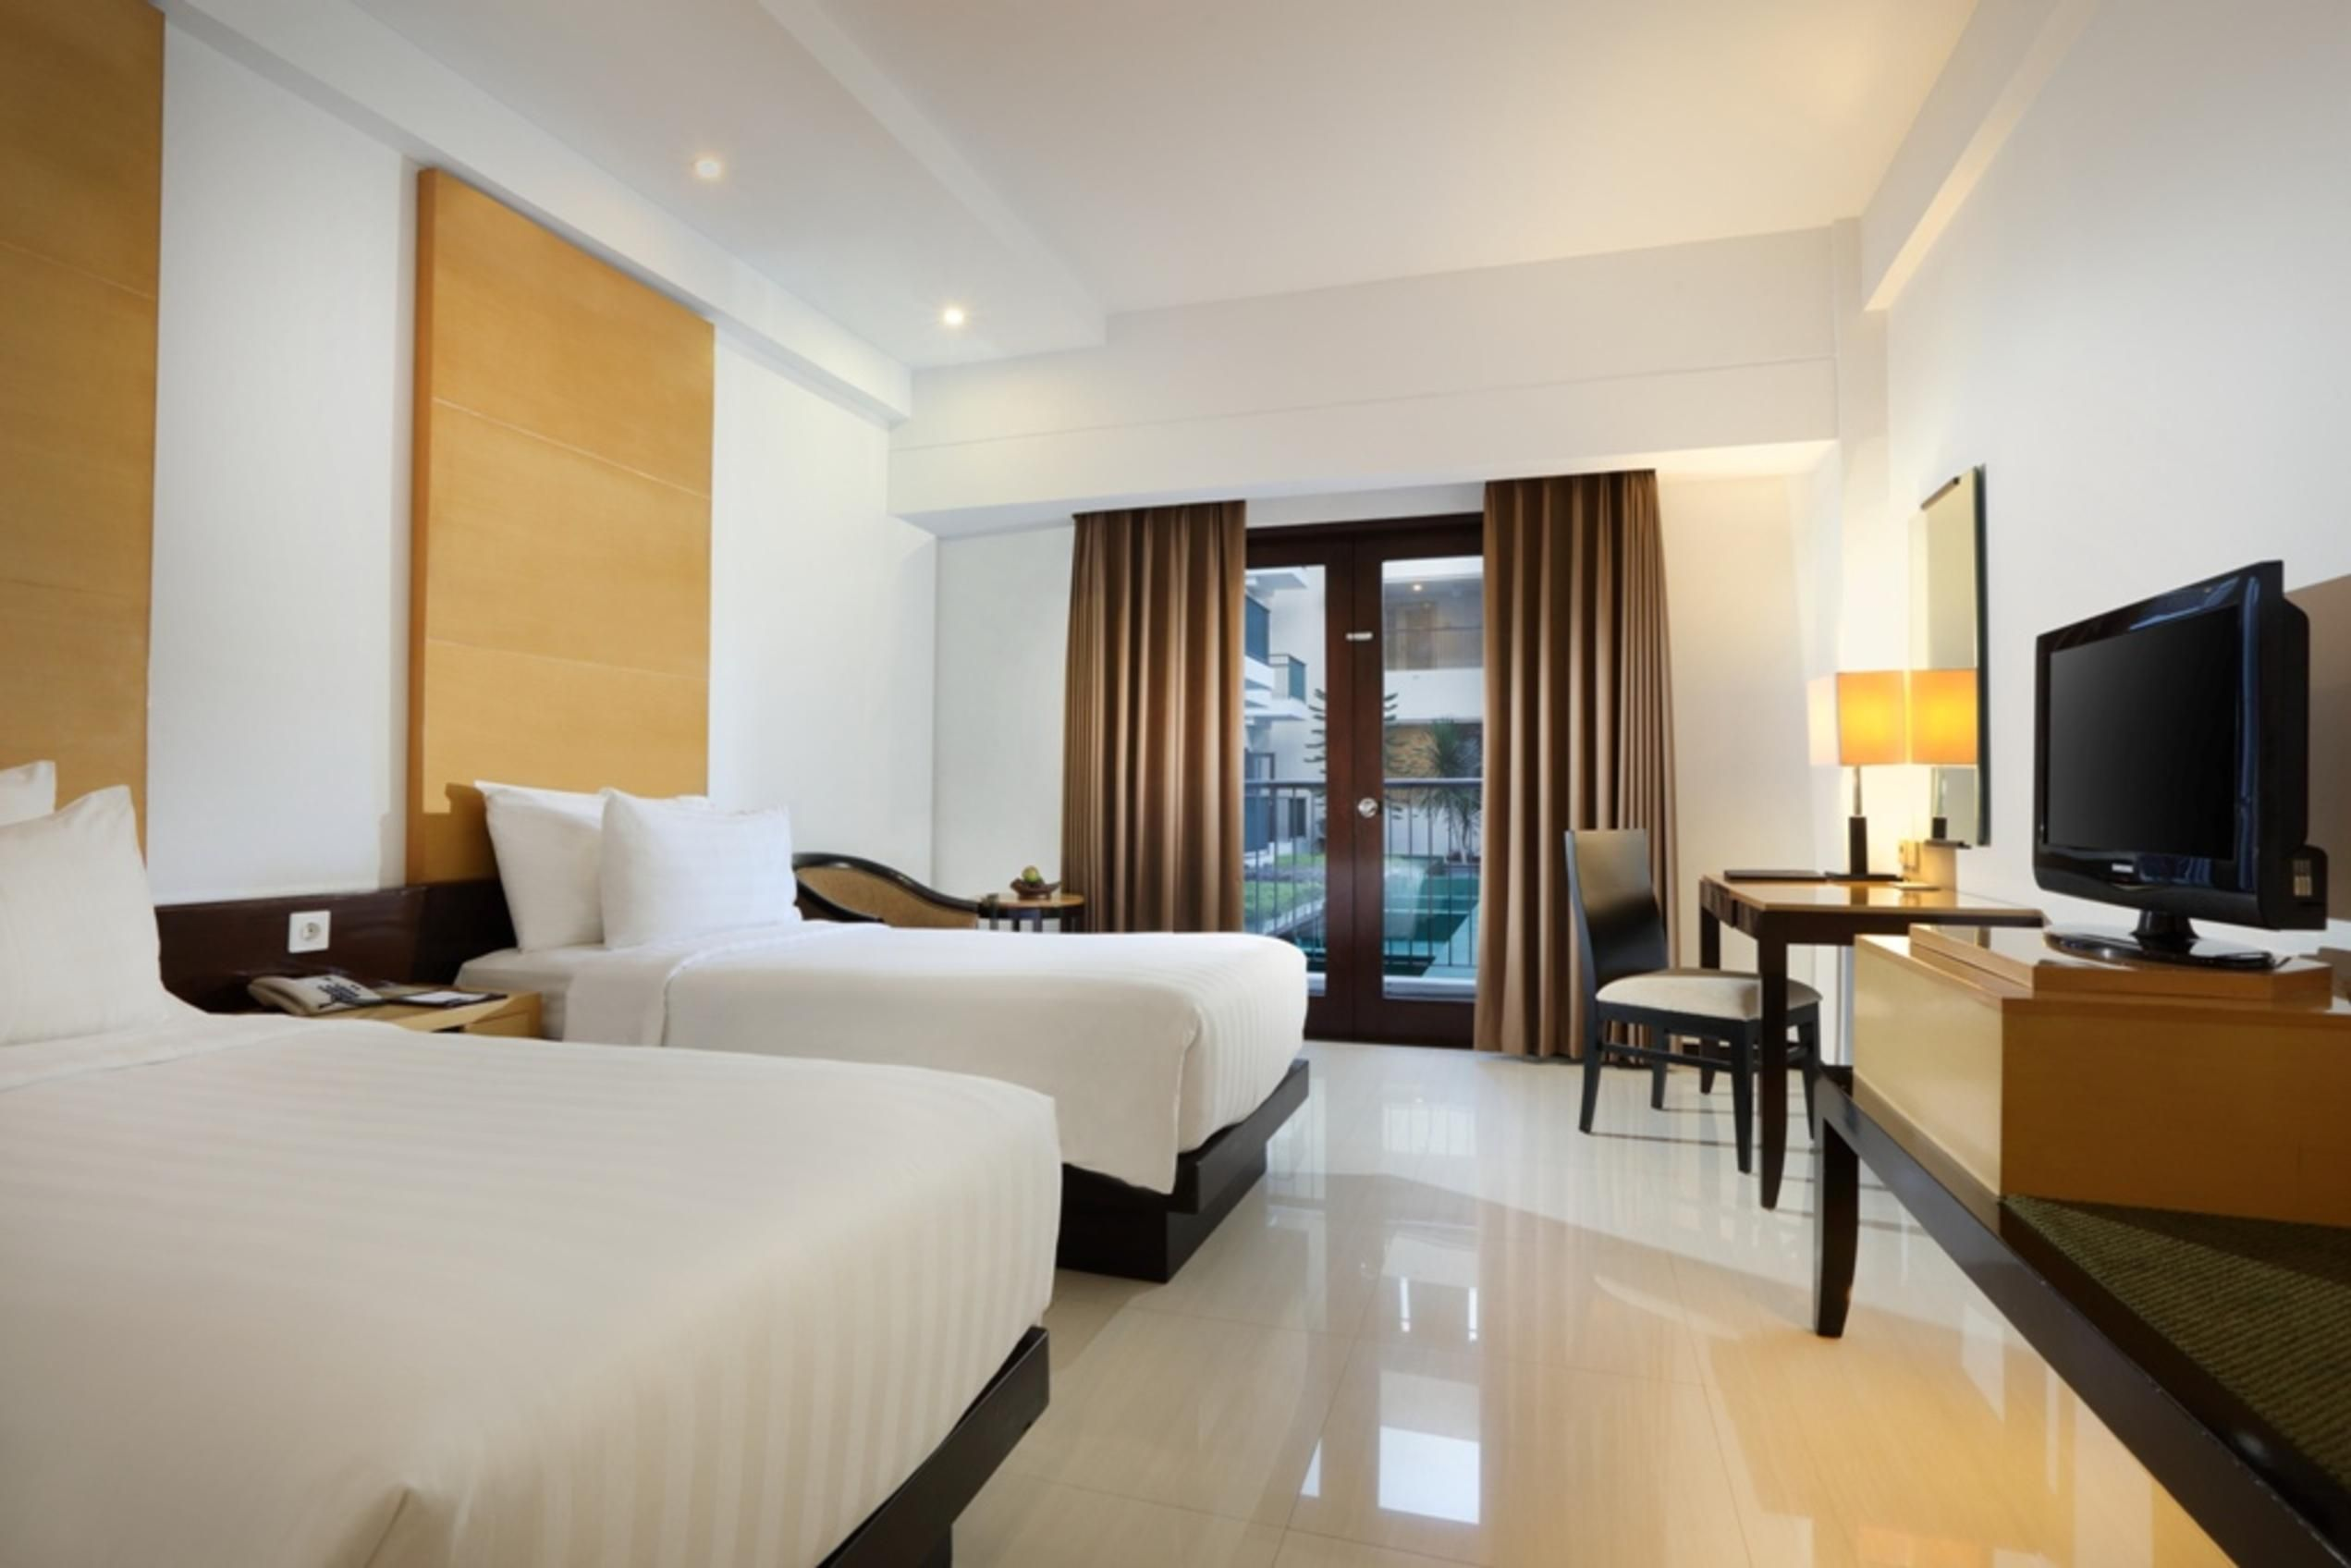 Hotels In Malang Book Promo Hotel East Java Voucher The 1o1 Oj Santika Premiere